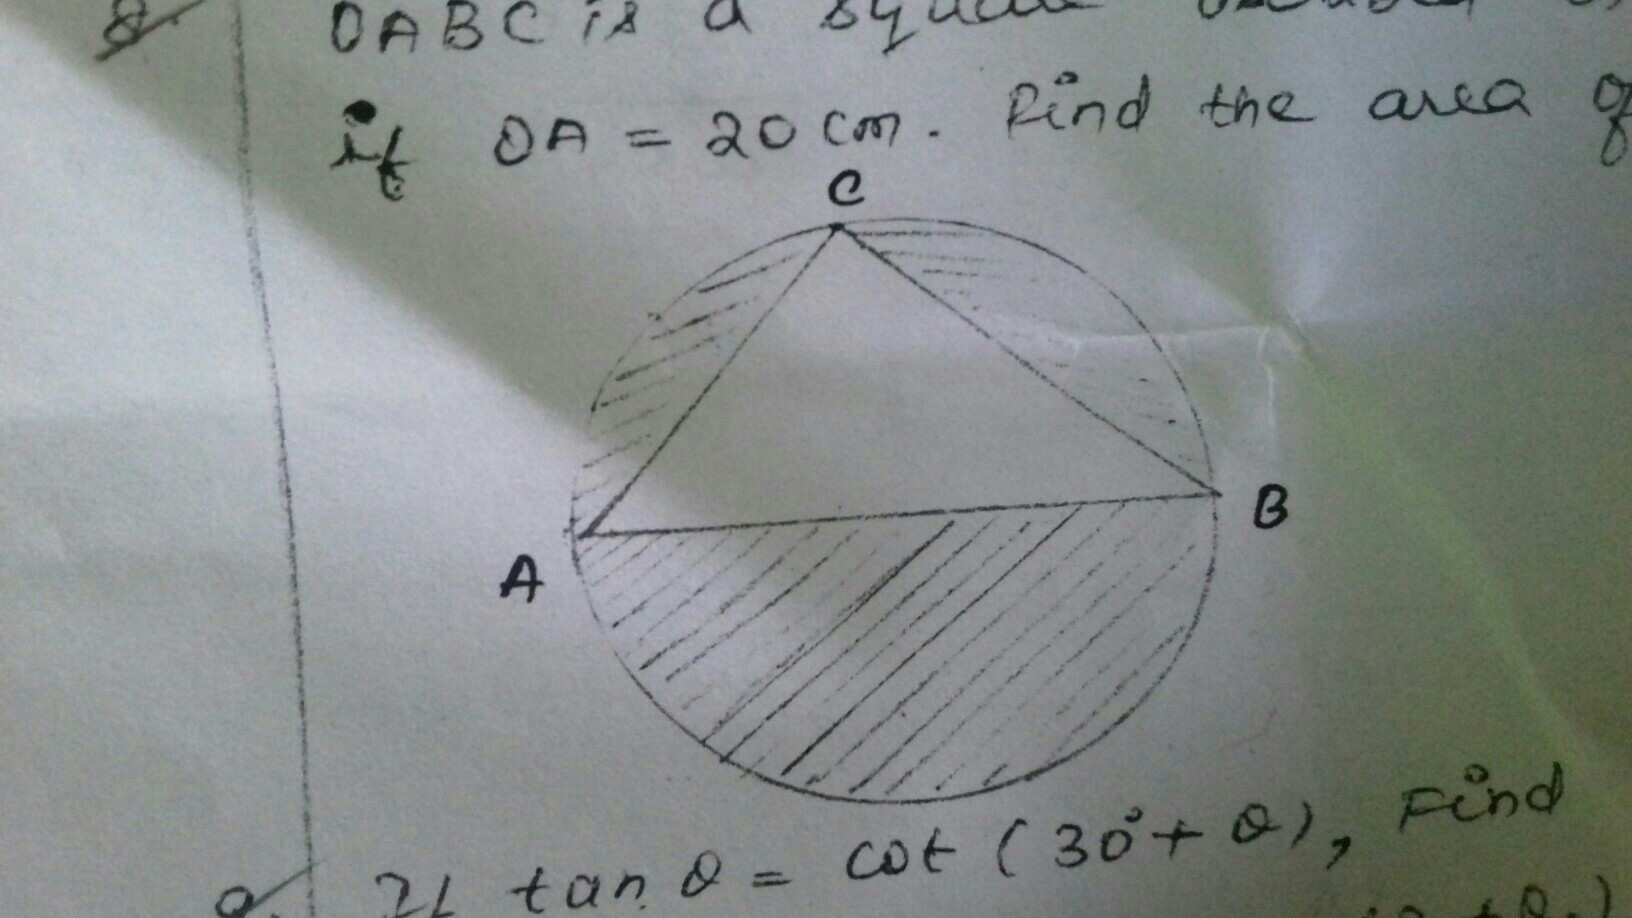 In The Figure Ab Is A Diameter Of The Circle Ac 6 Cm